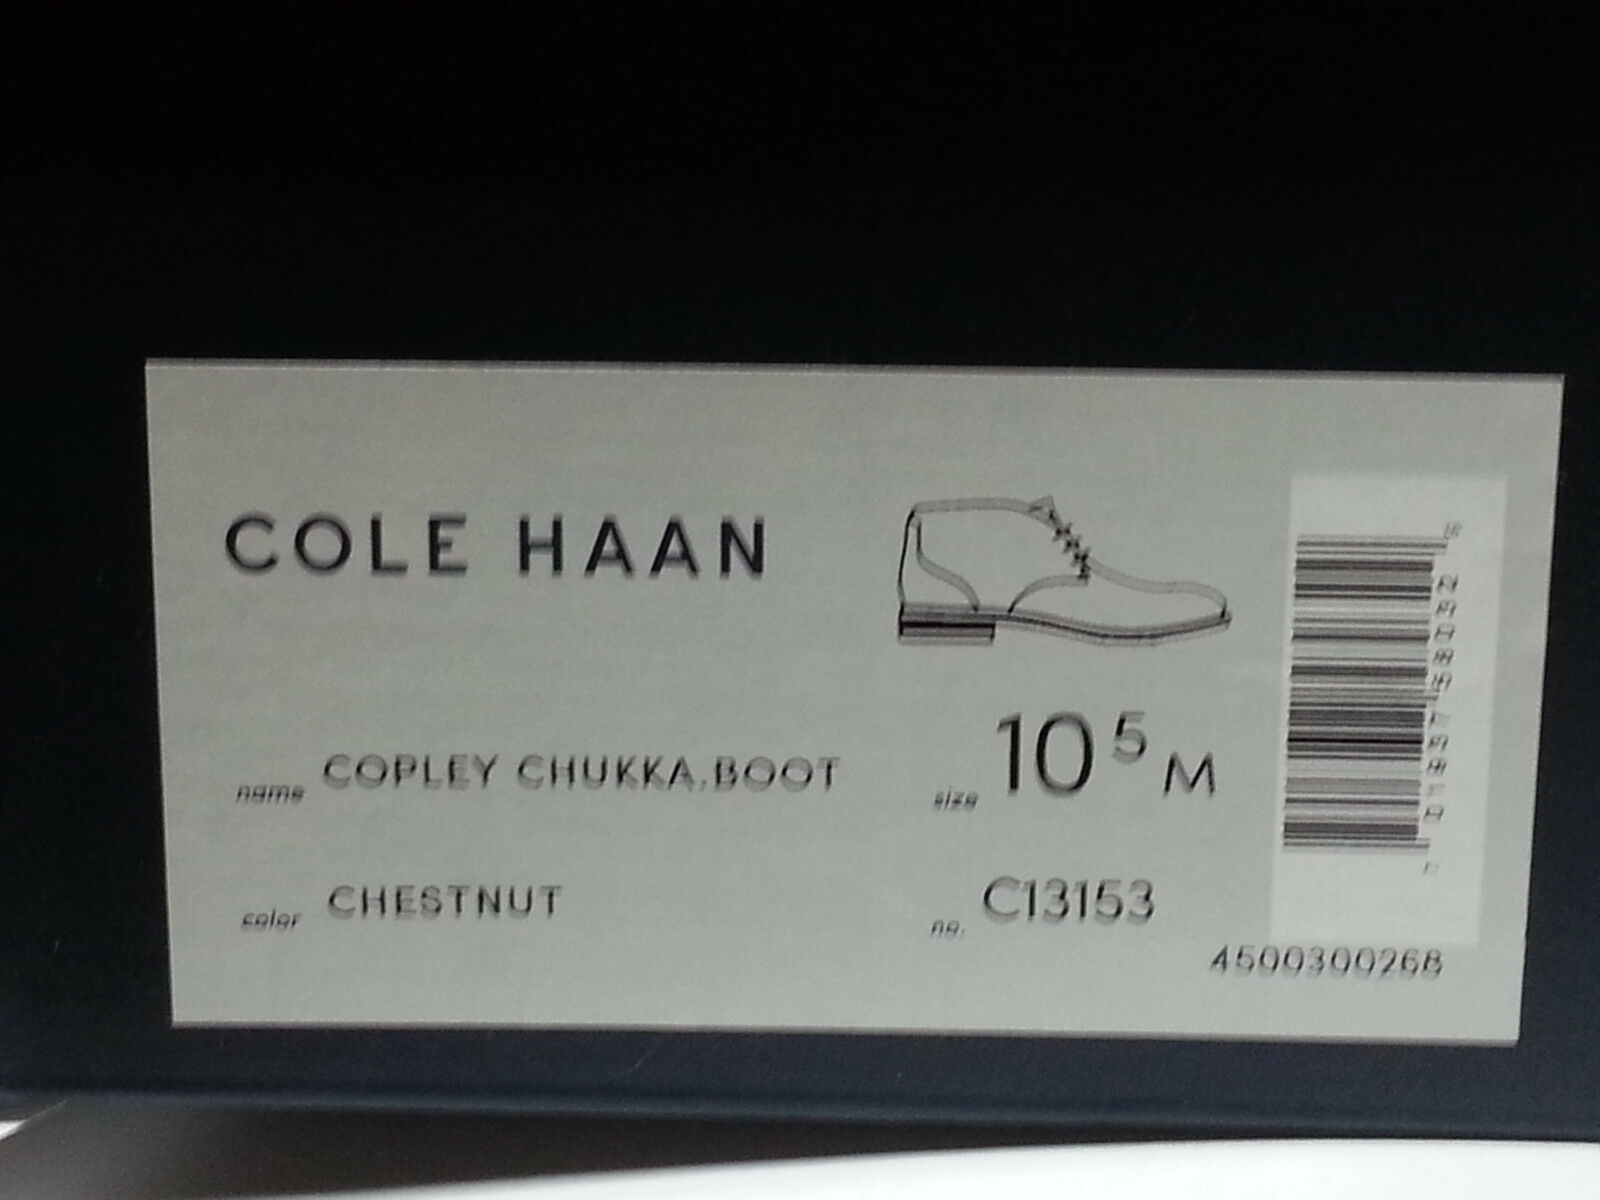 Cole Haan Men Size 10.5 Brown Leather Copley Chukka Boots Made in India New Box image 11